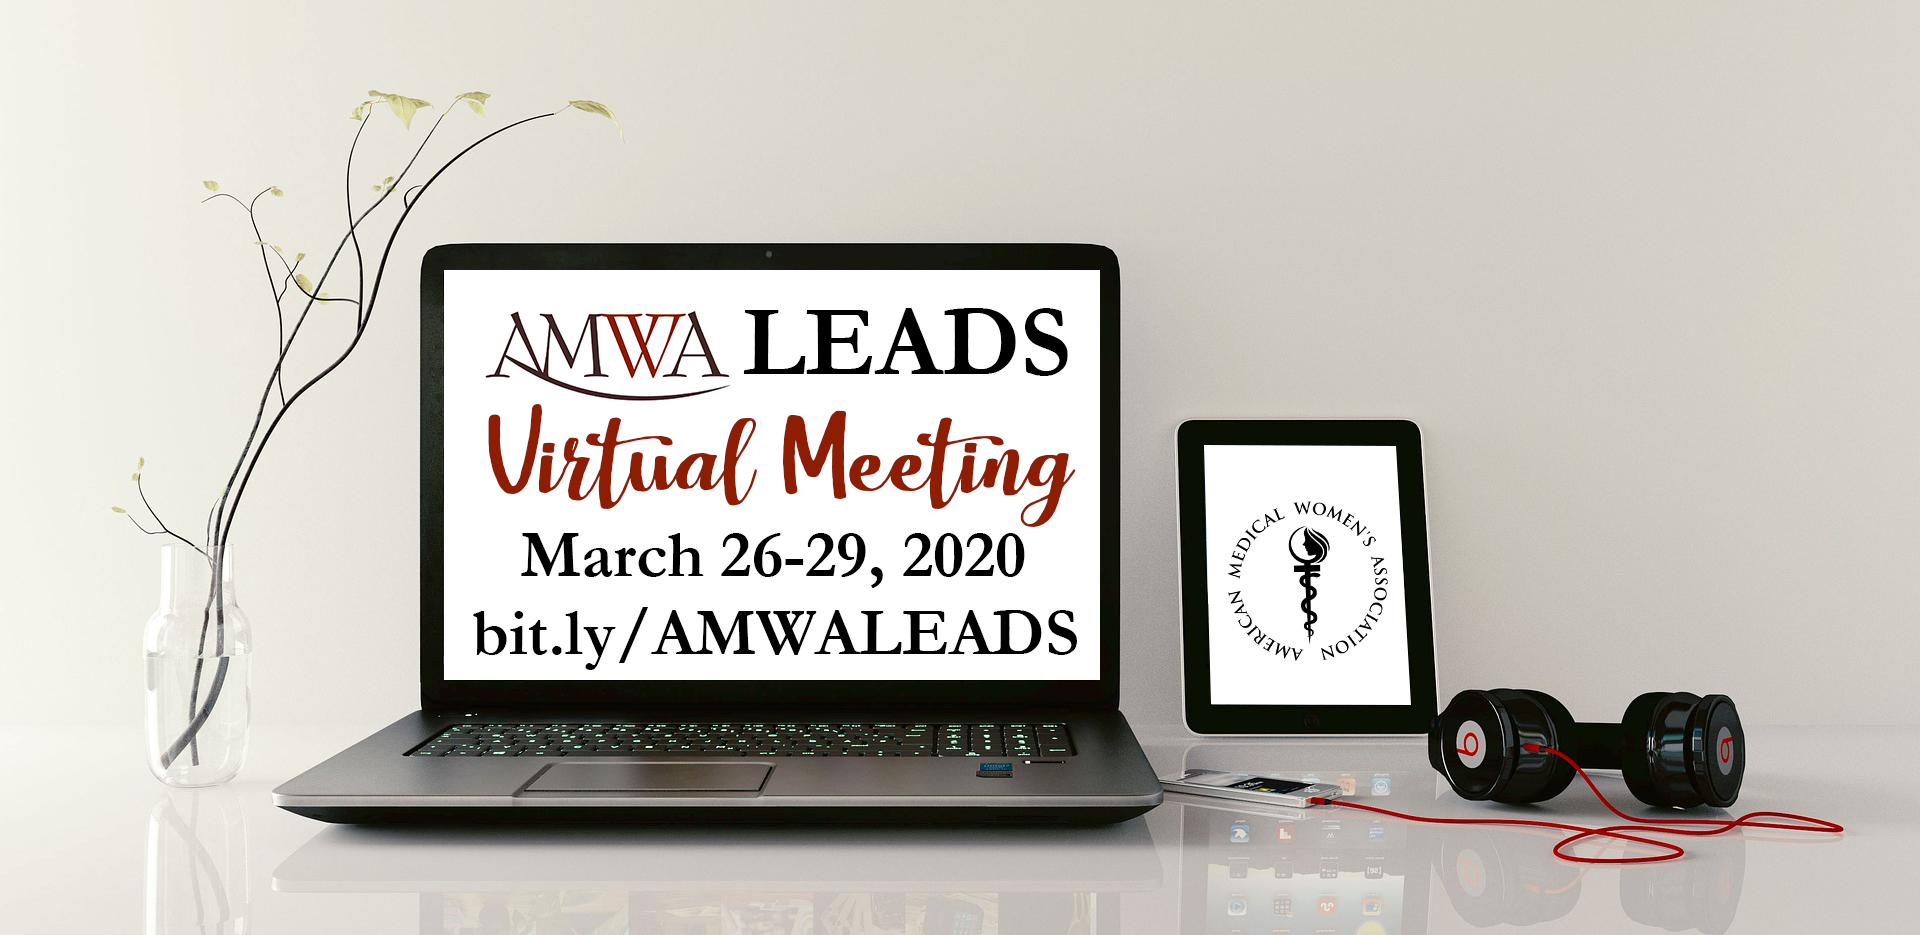 AMWA 105th Anniversary Meeting: AMWA LEADS